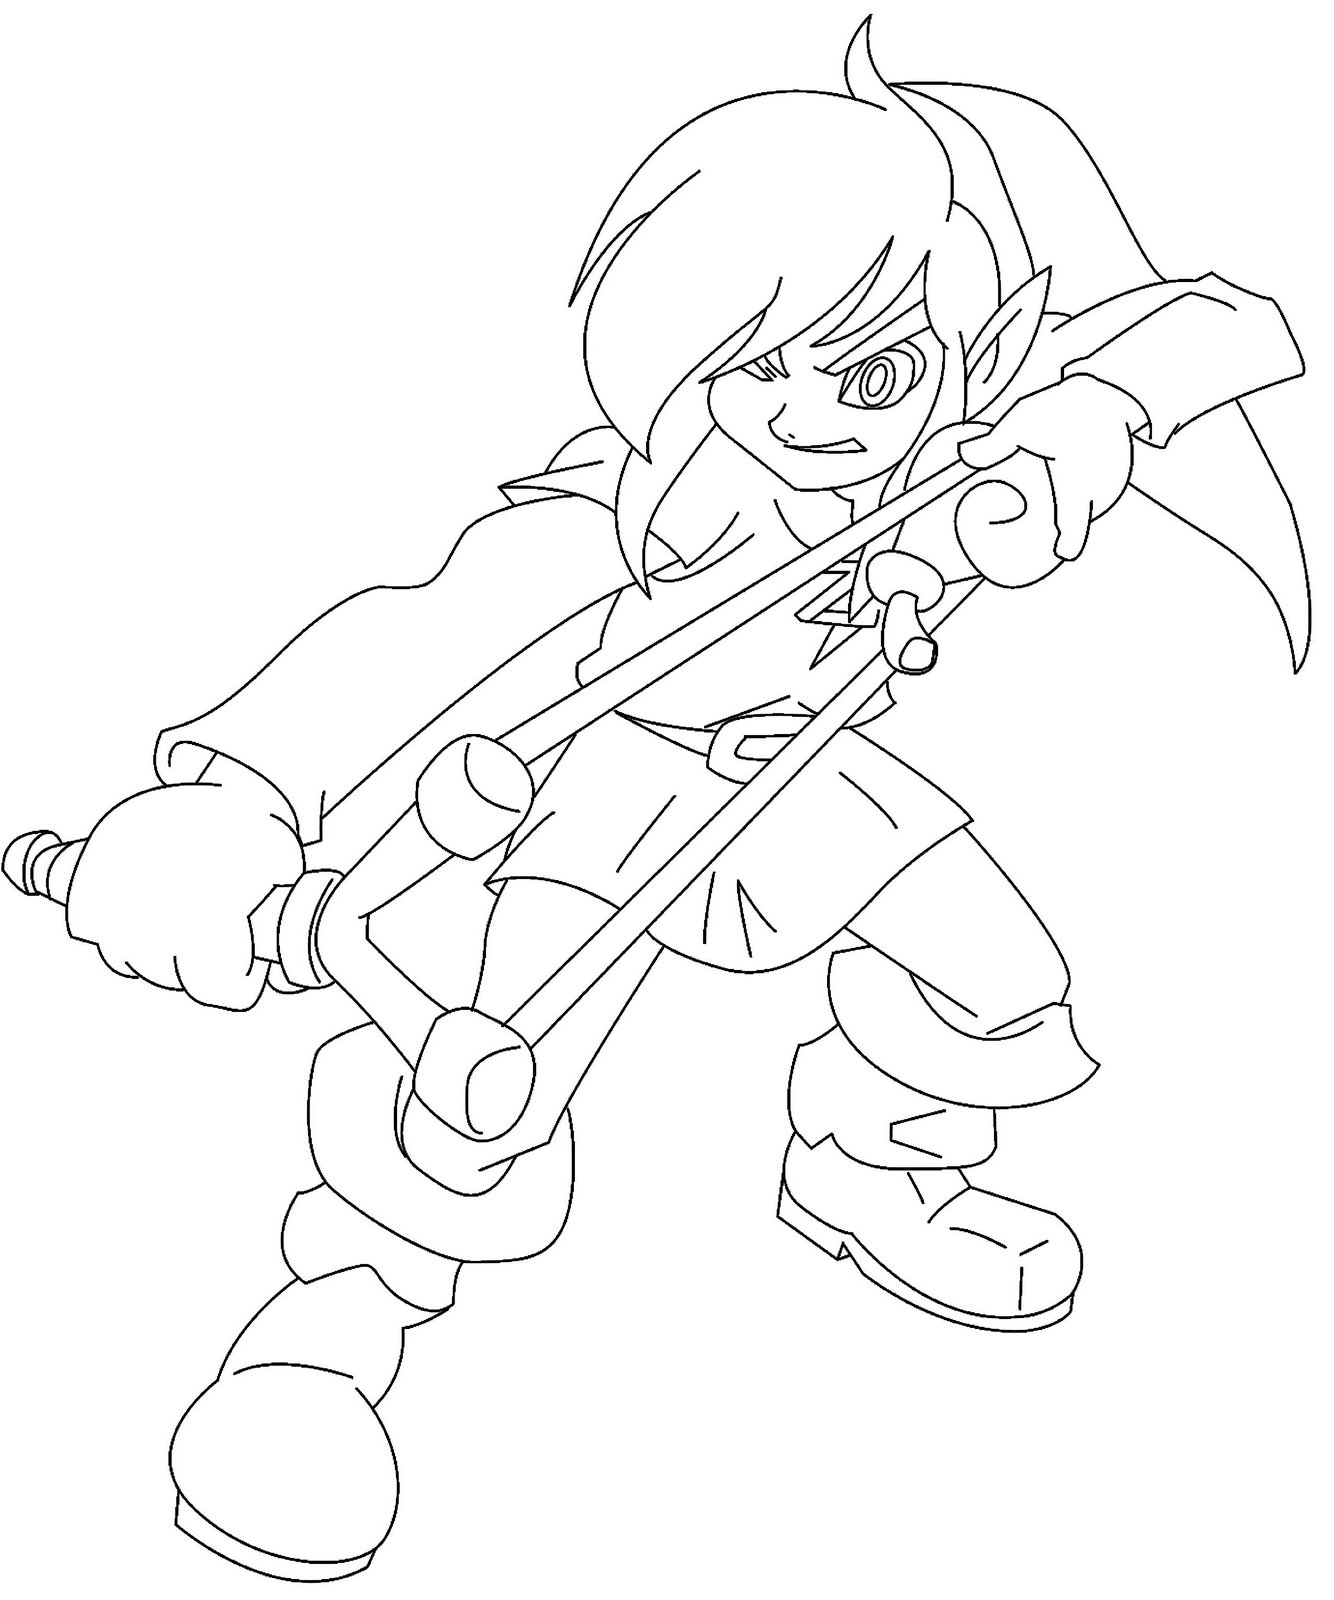 Coloring pages for zelda - Legend Of Zelda Coloring Pages